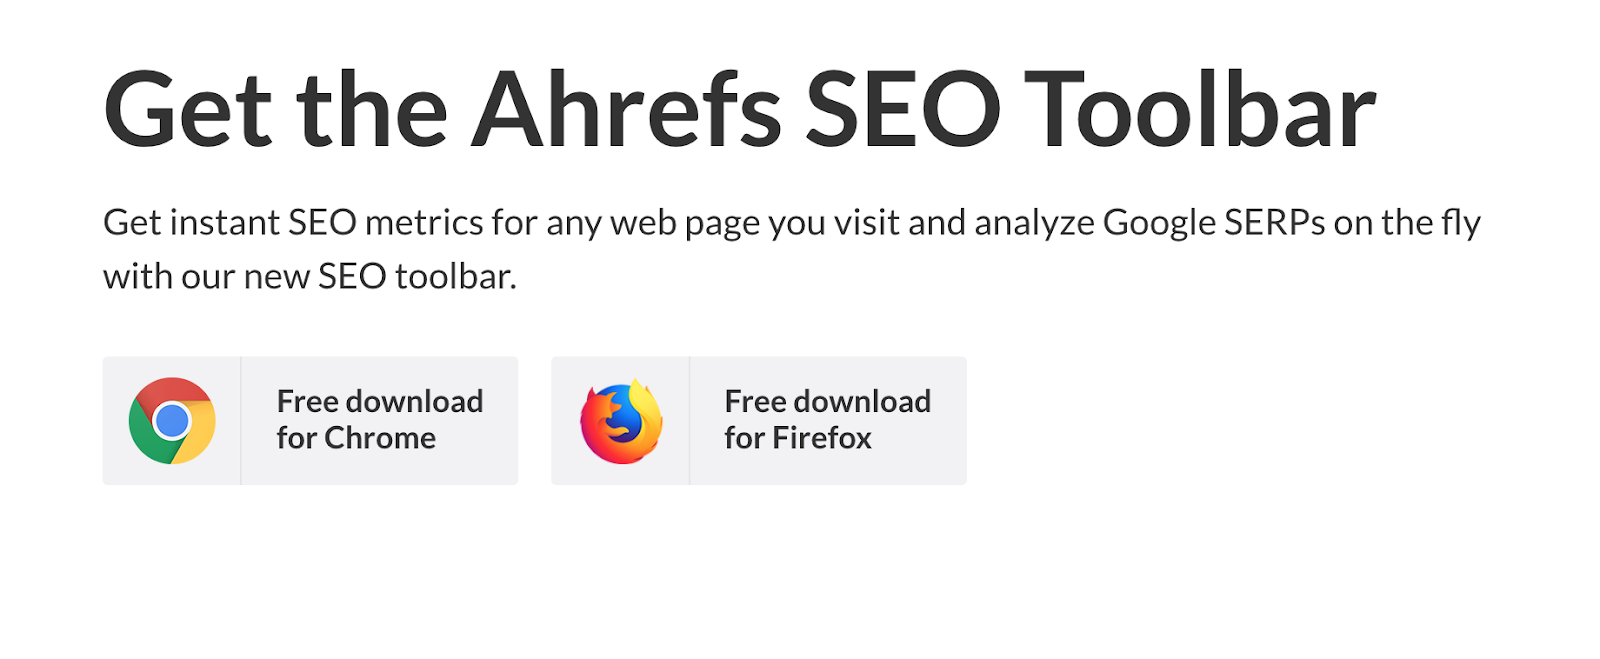 Ahrefs SEO Toolbar Landing Page Snippet